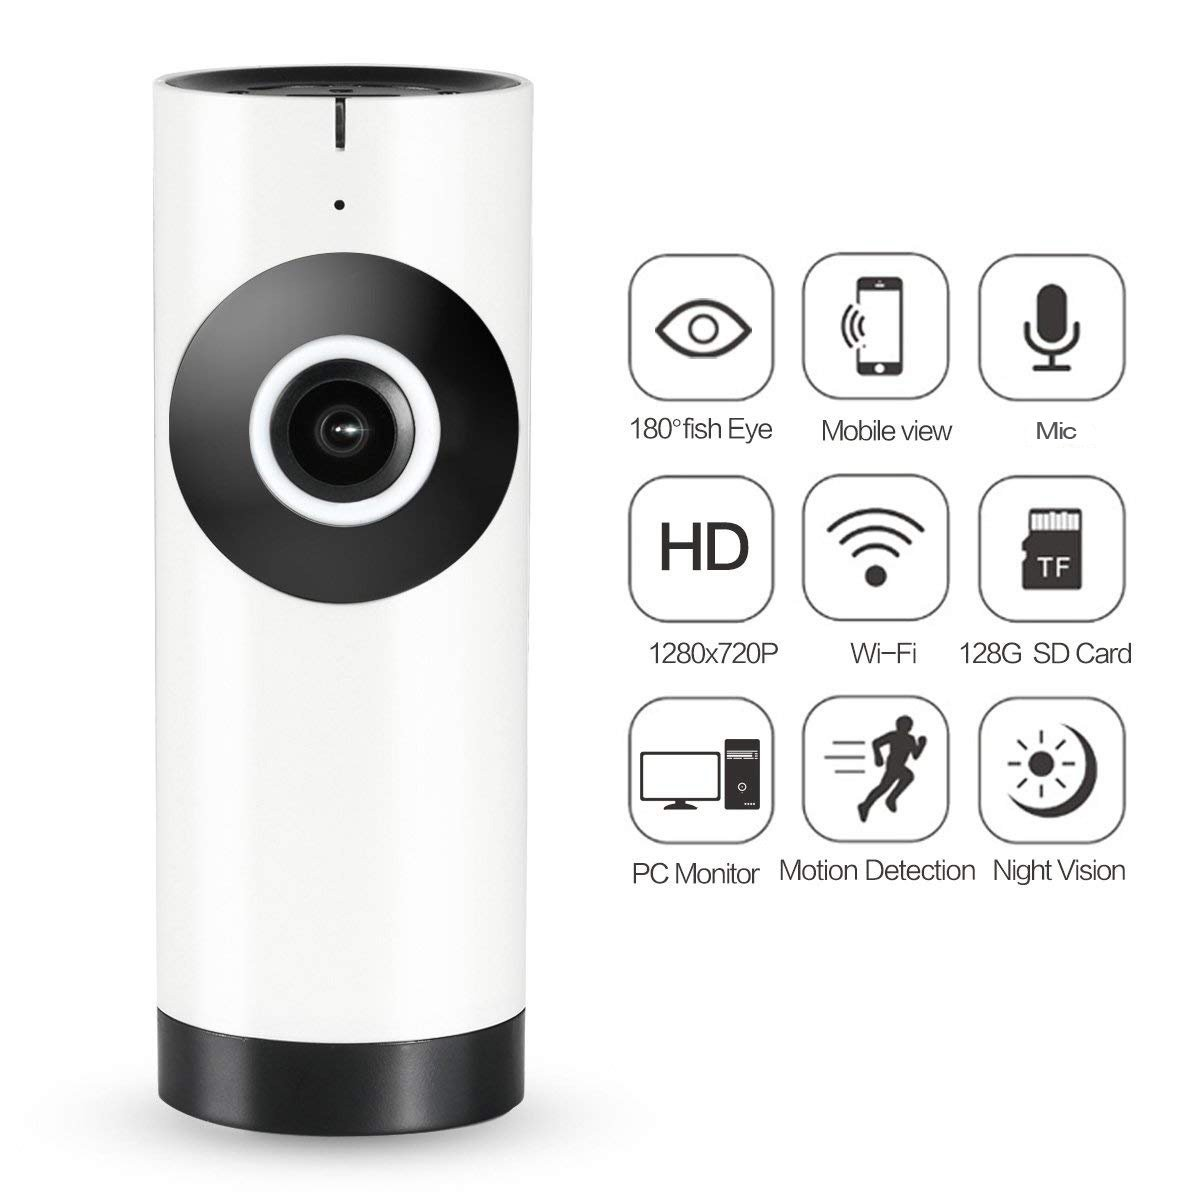 Wireless Security Camera, WiFi HD Globe Camera 180 Wide Angle Fisheye For Home Security Baby Pet Surveillance with Motion Detection + Speaker and Microphone Night Vision